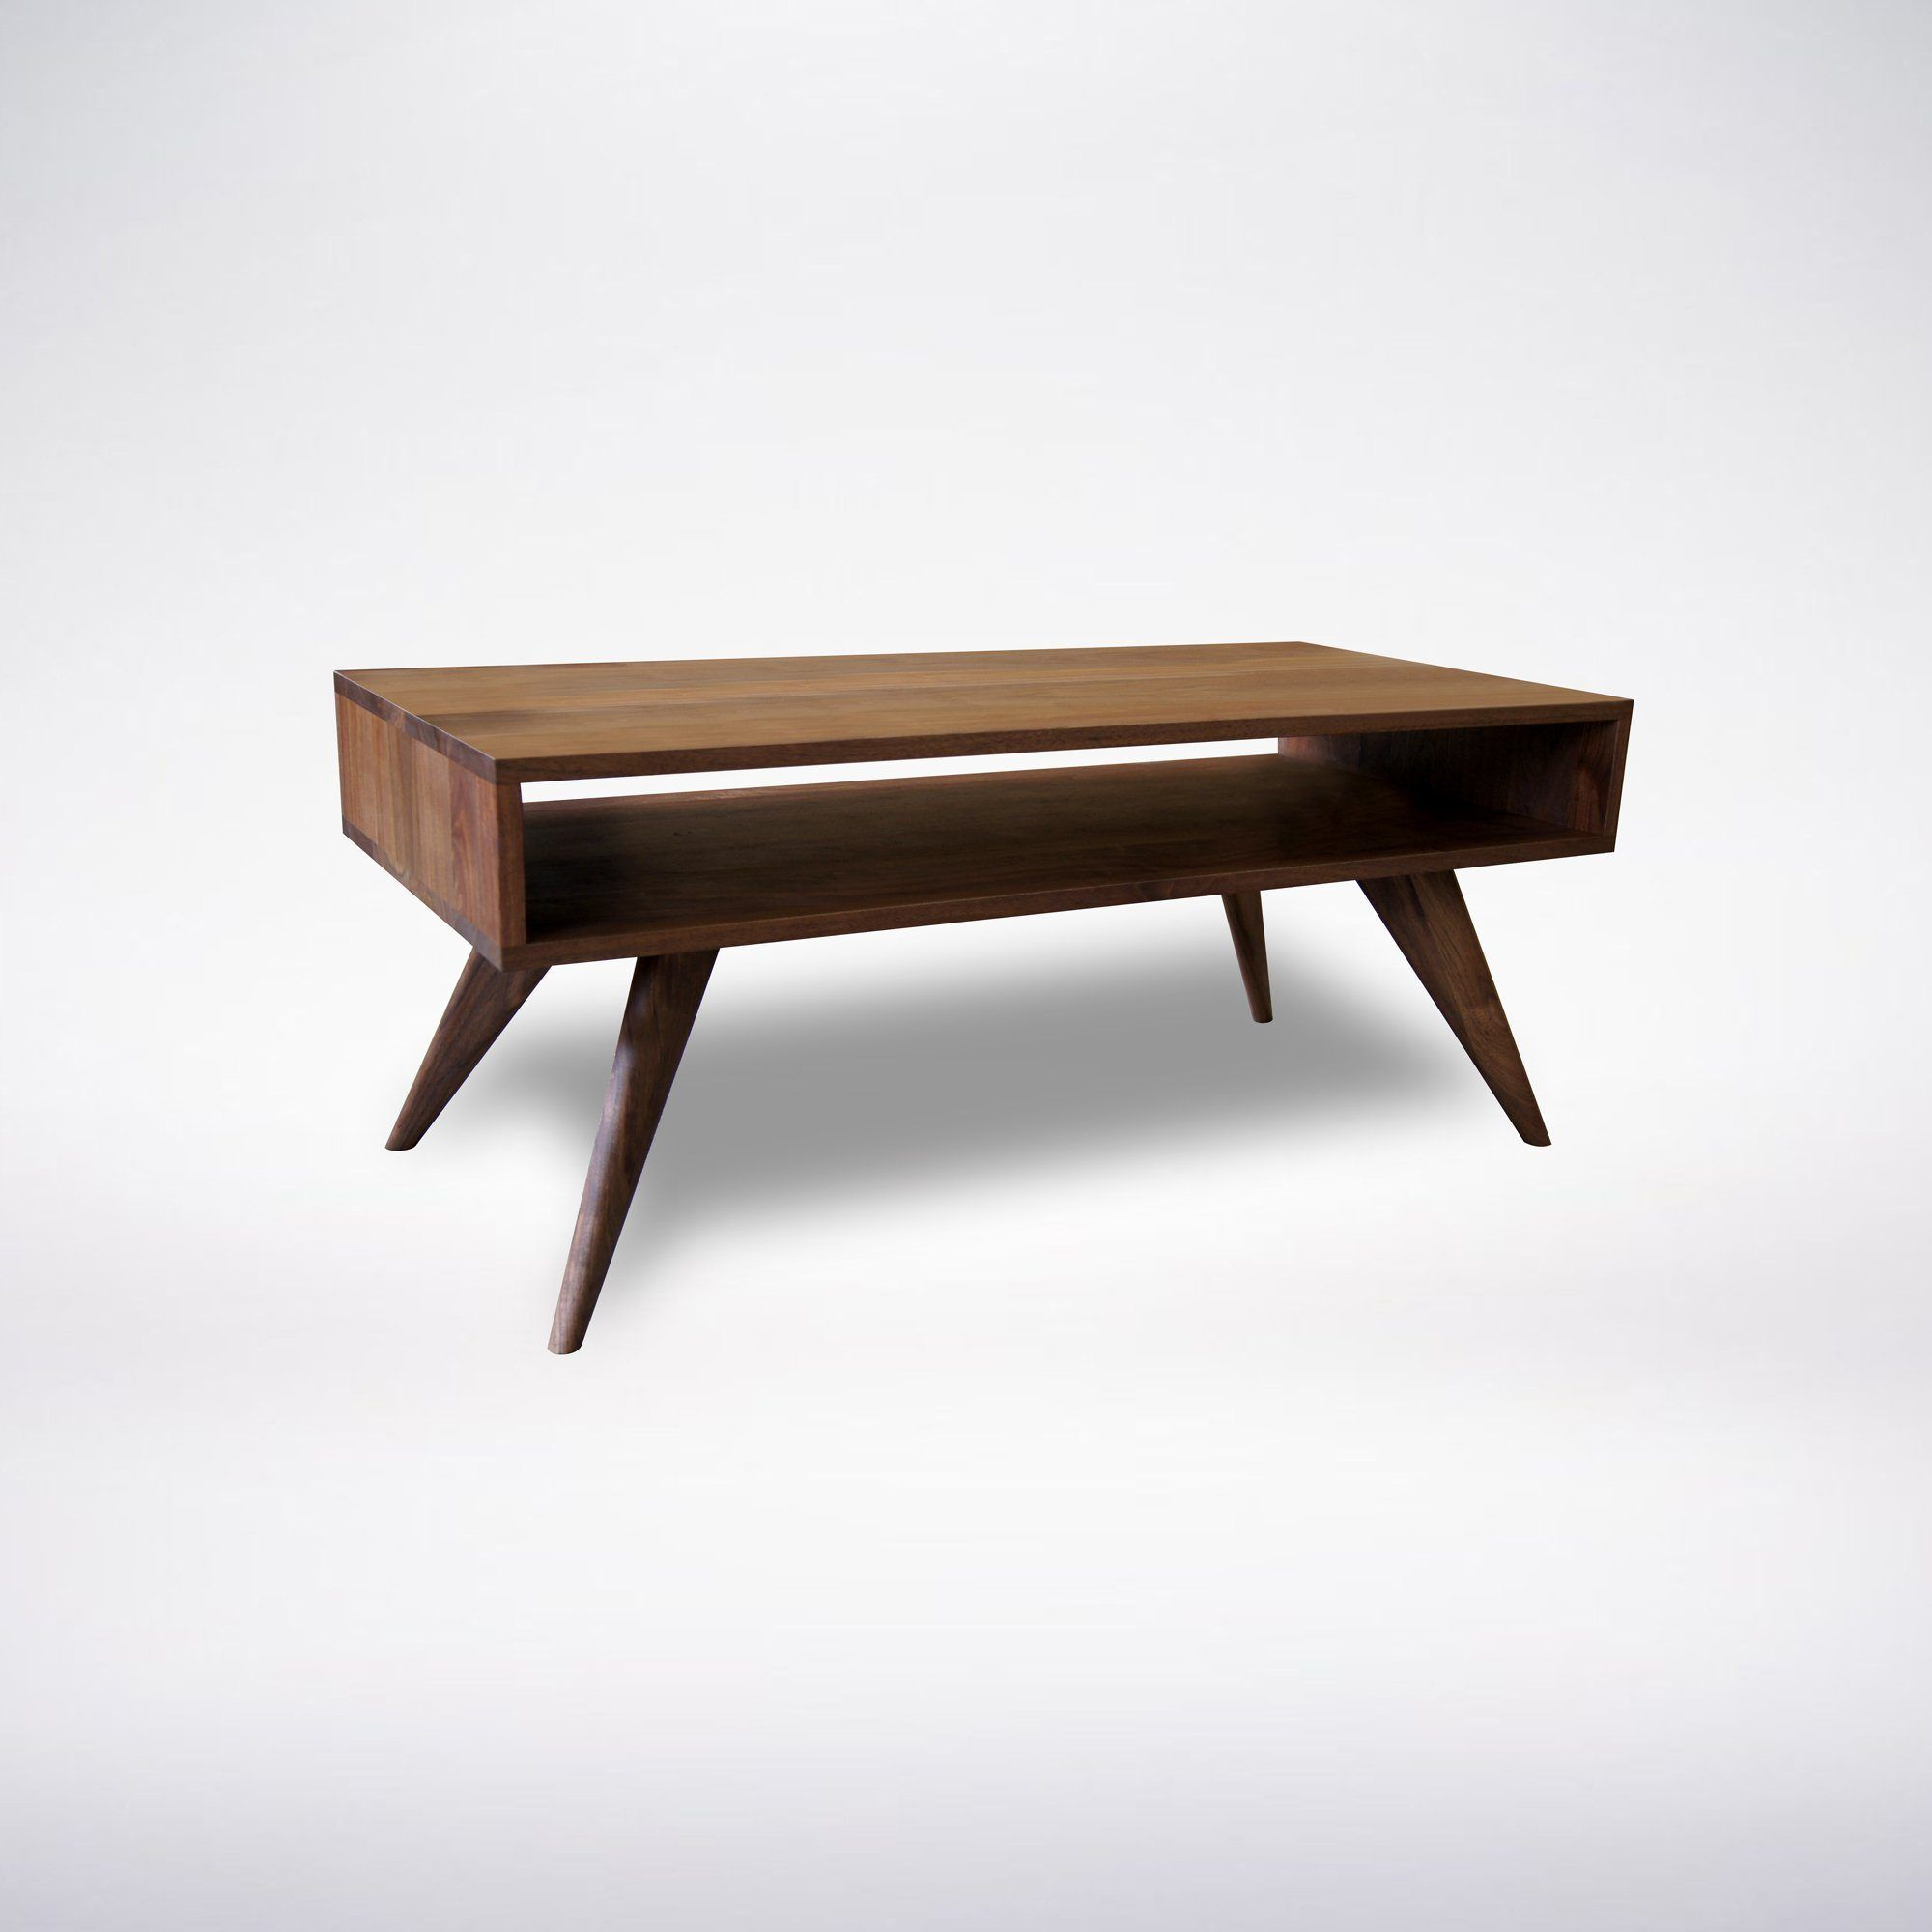 Amherst Mid Century Modern Coffee Table Brown Project 62 Mid Century Modern Coffee Table Mid Century Coffee Table Modern Coffee Tables [ 2994 x 2994 Pixel ]